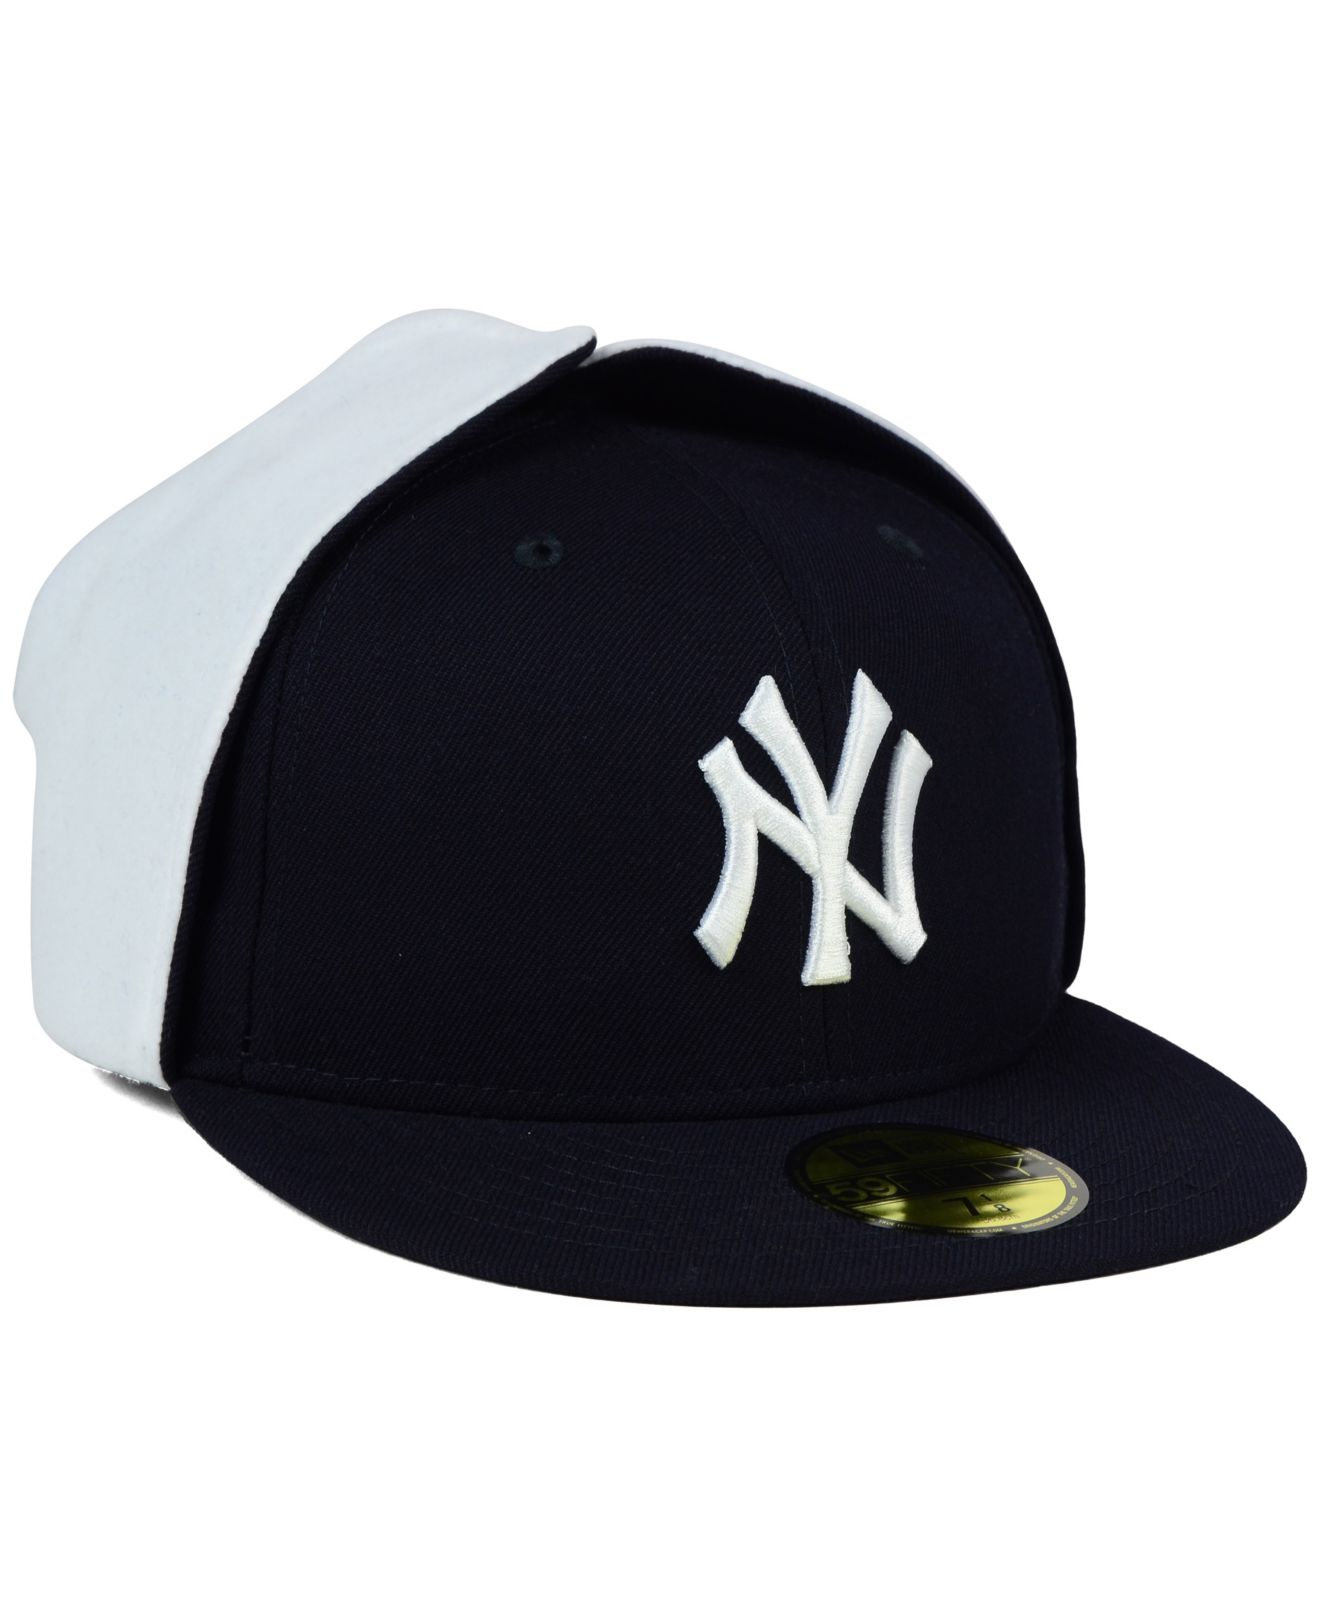 1ad03849 KTZ New York Yankees Dog Ear 59fifty Cap in Blue for Men - Lyst